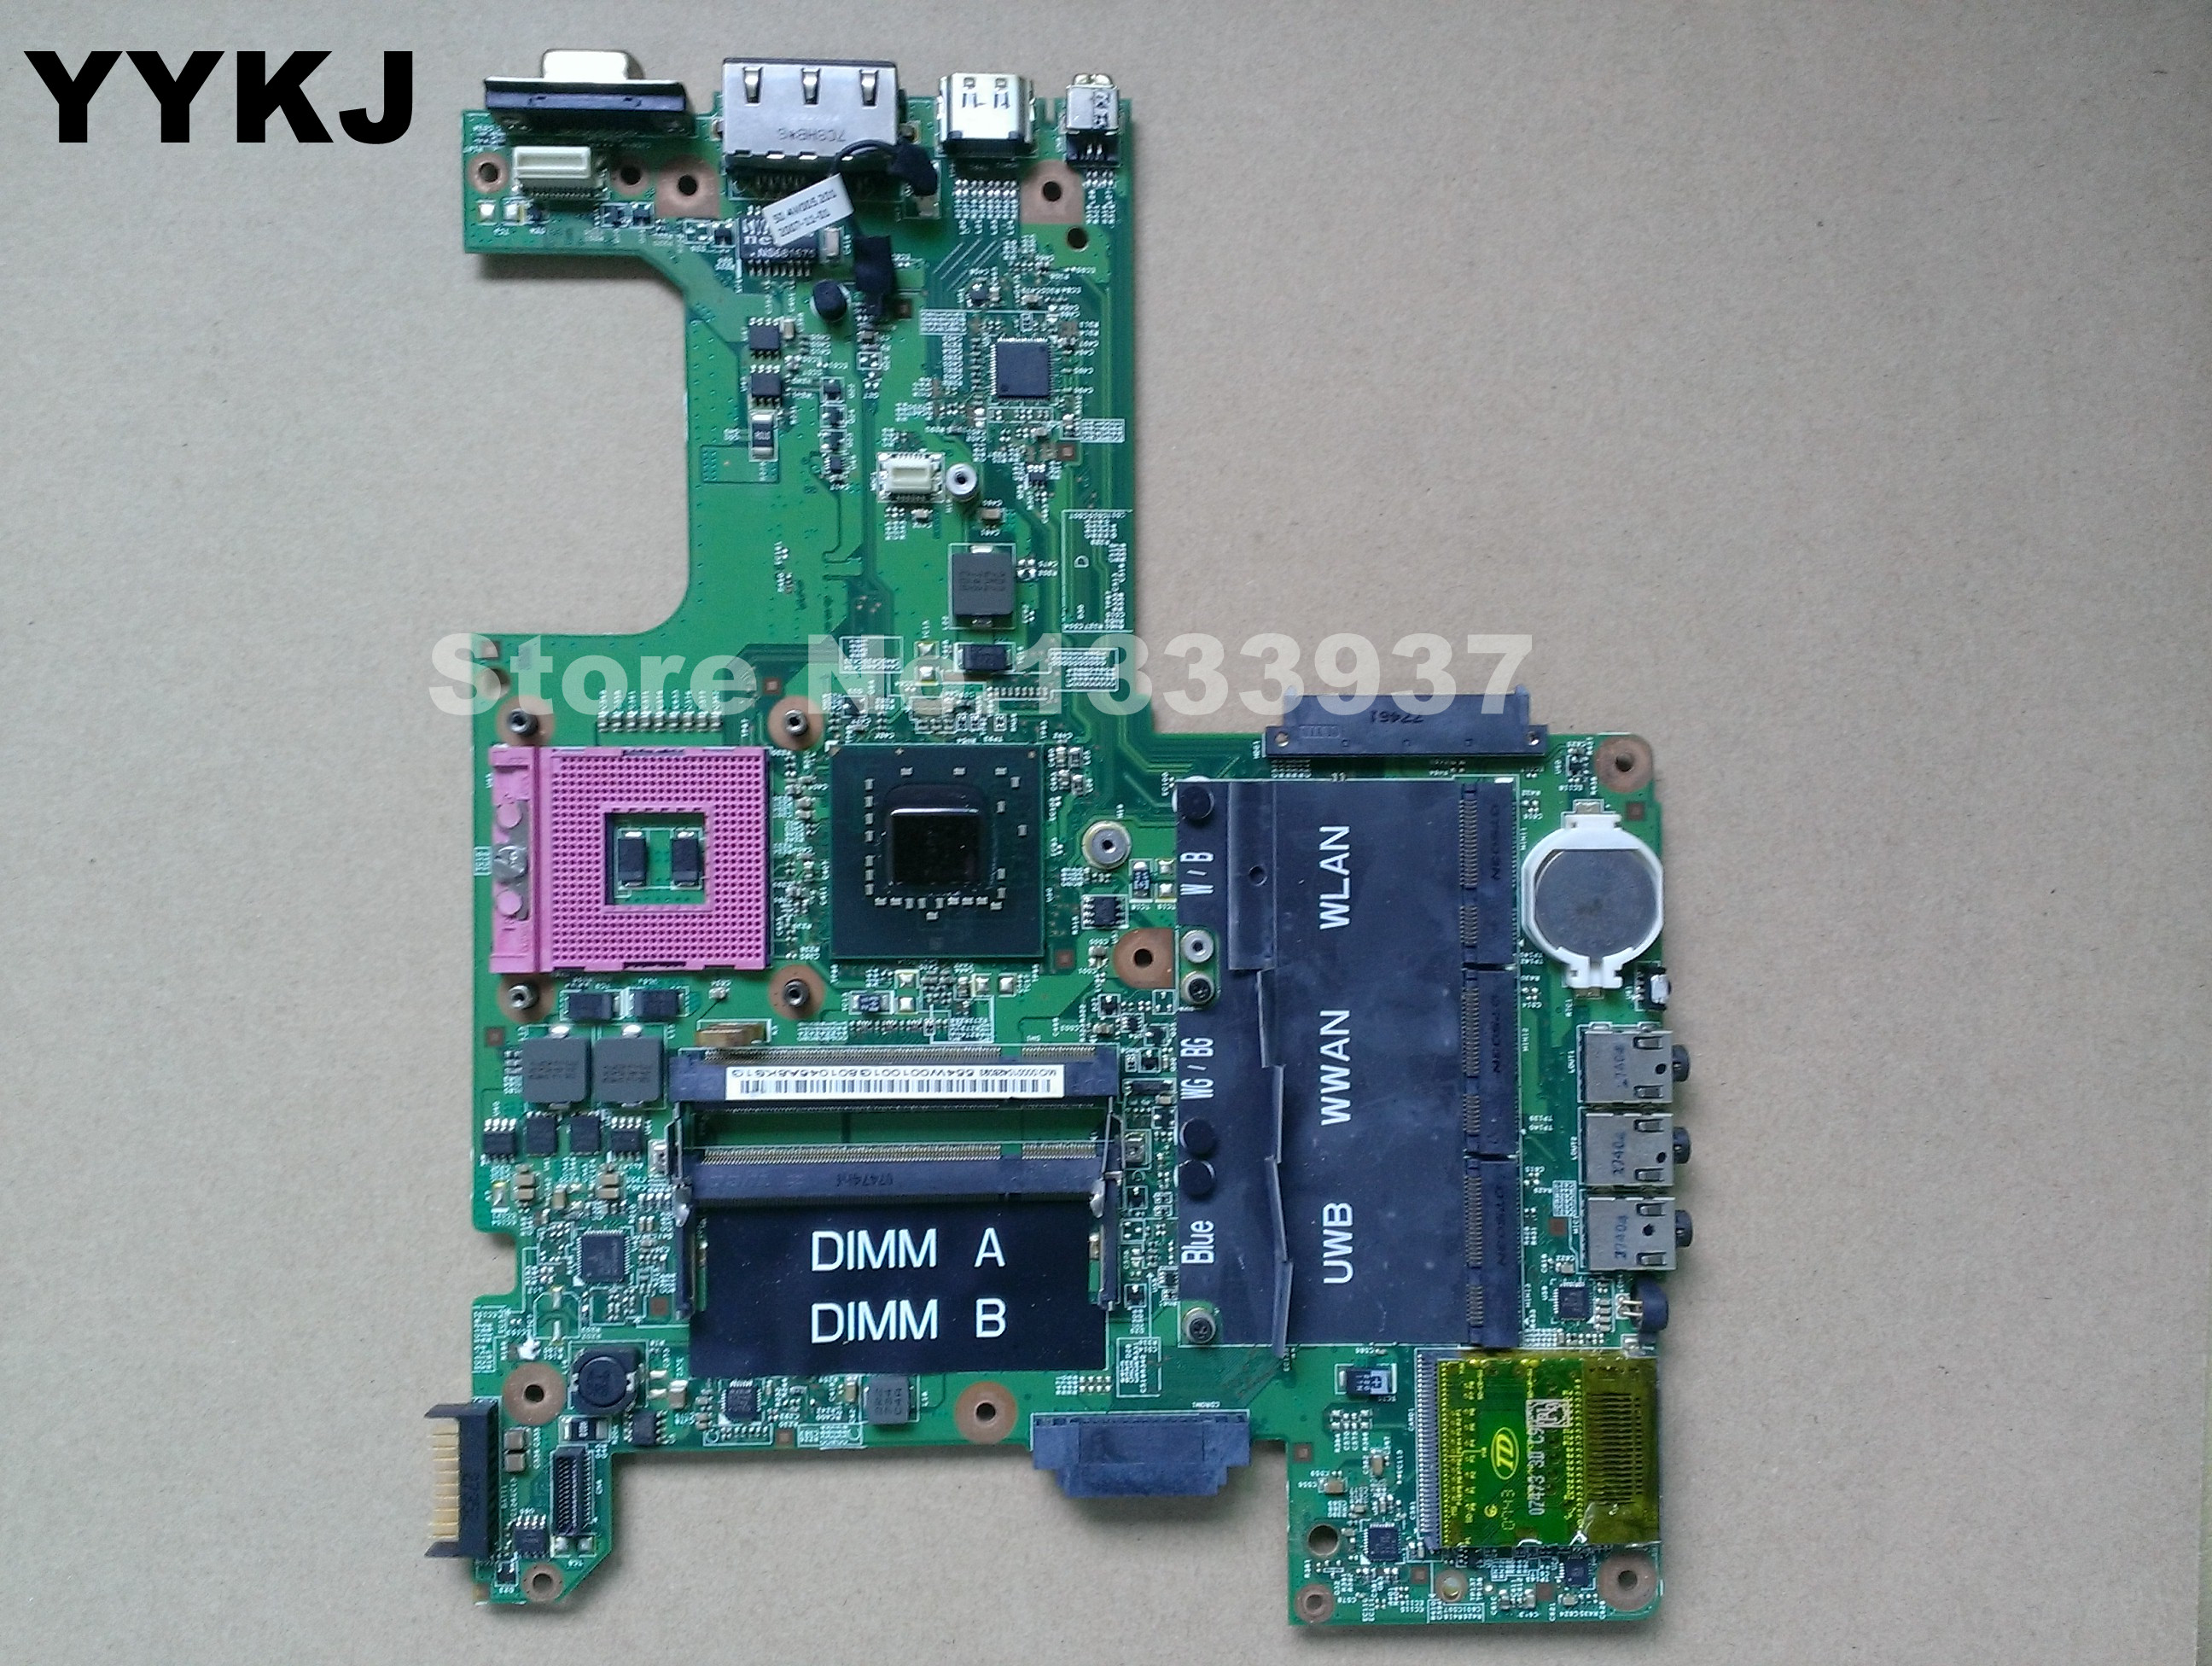 07211-1 CN-0KY749 0KY749 KY749 for Dell Inspiron 1525 Laptop Motherboard Mainboard 48.4W002.011